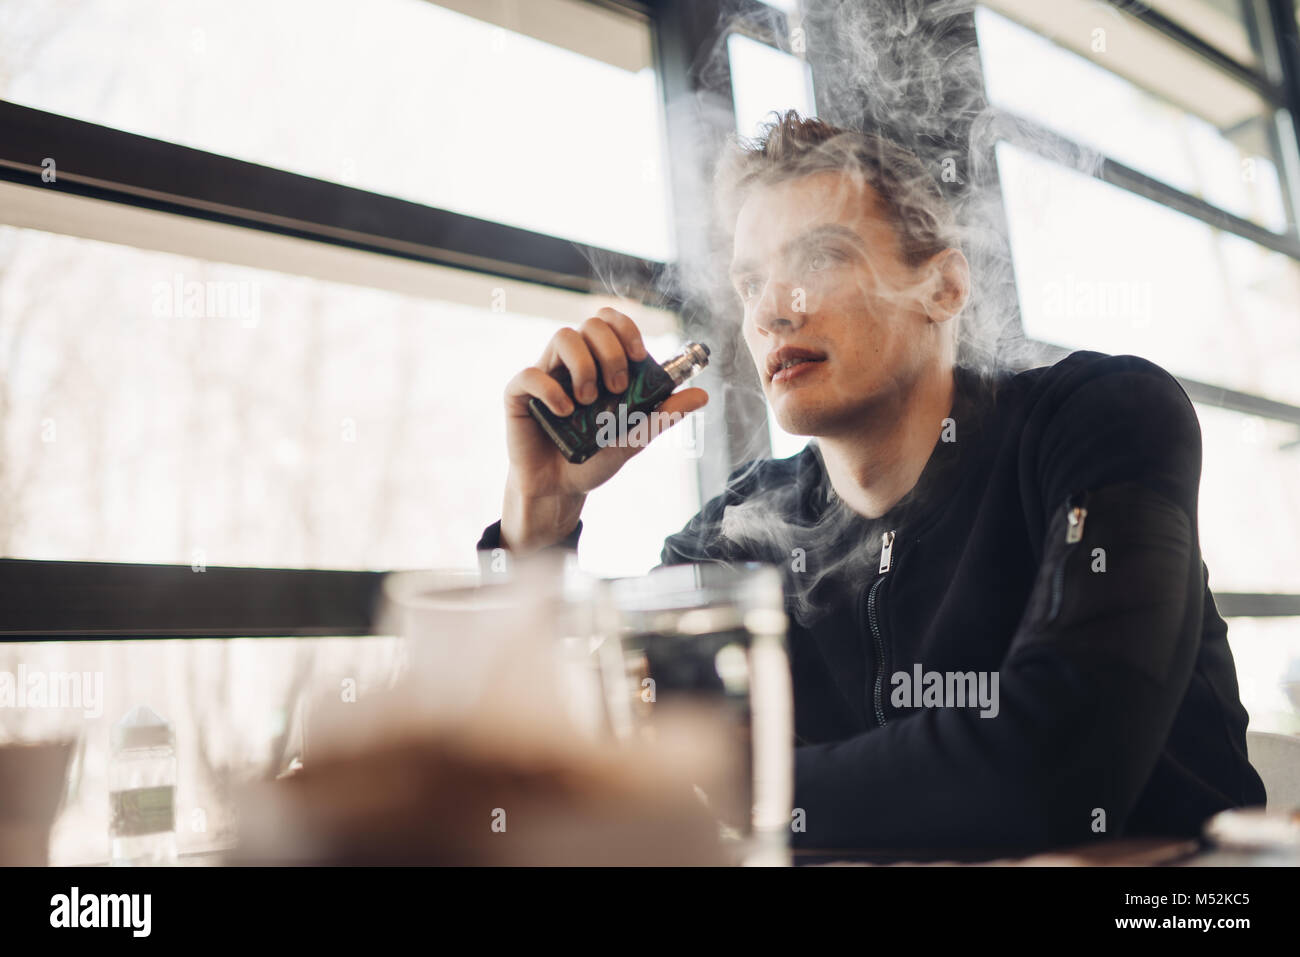 Young man vaping in closed public space.Smoking electronic cigarette in cafe.Nicotine addiction.Way to quit smoking,old - Stock Image